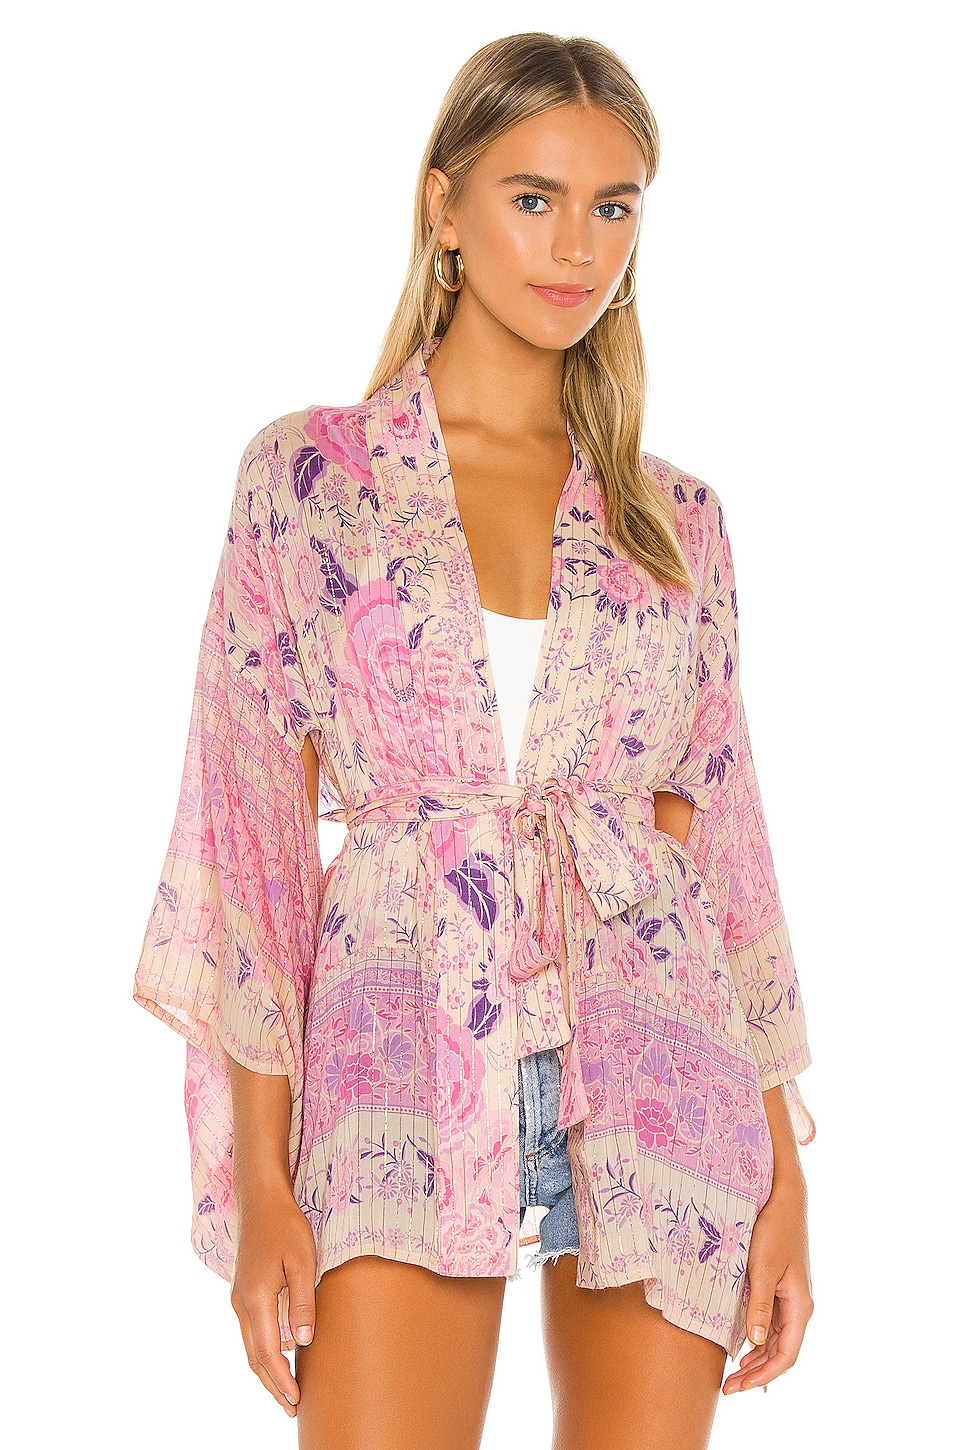 x REVOLVE Mystic Short Robe, view 2, click to view large image.